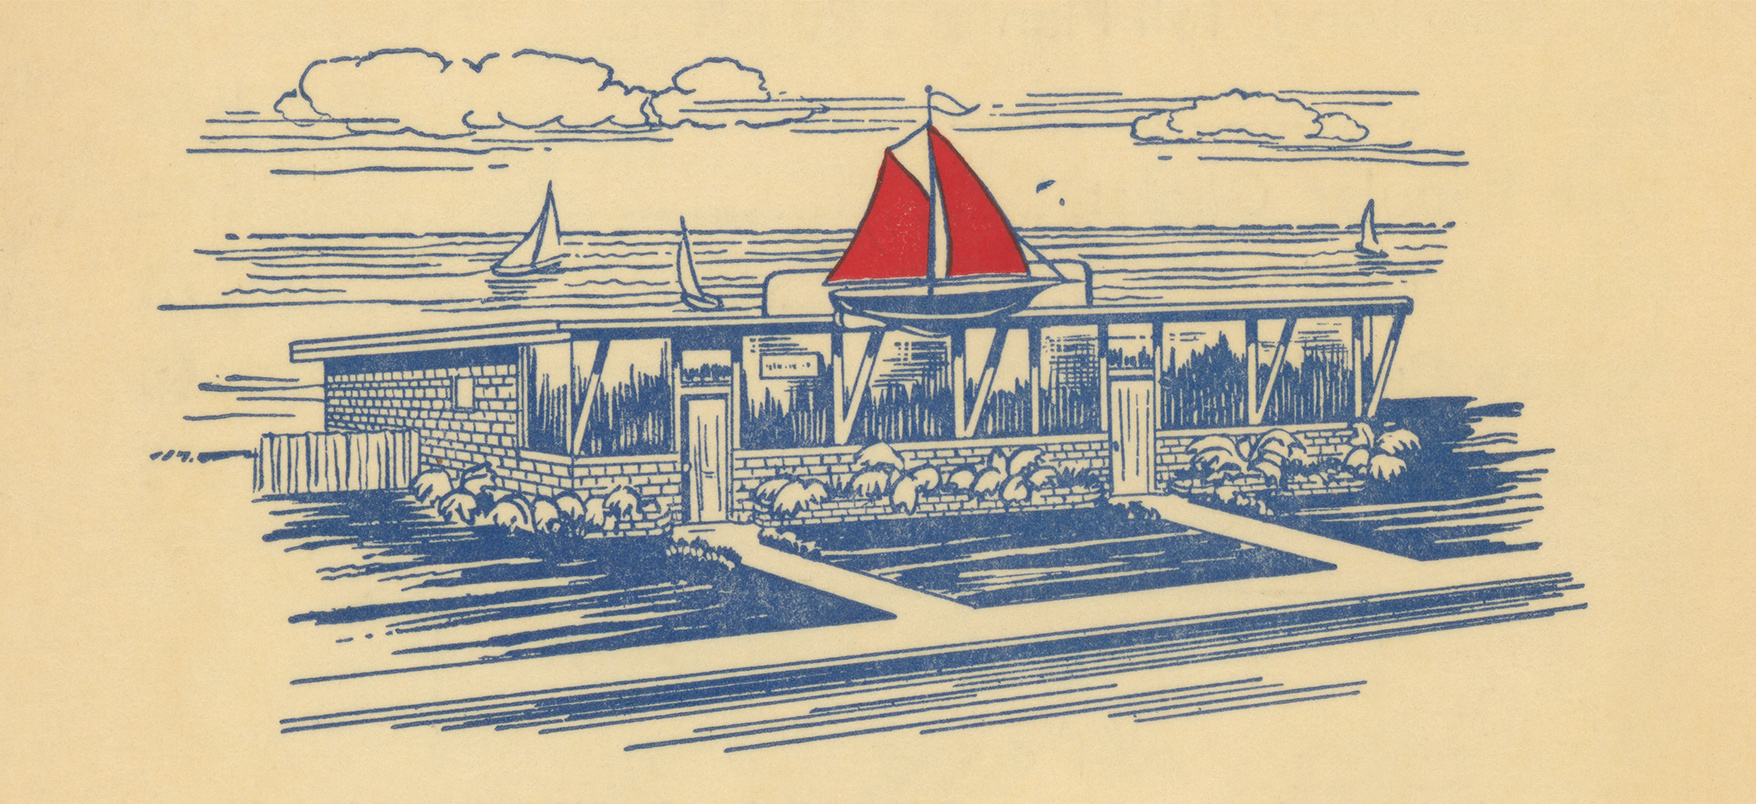 Red Sails Inn menu illustration, c1957